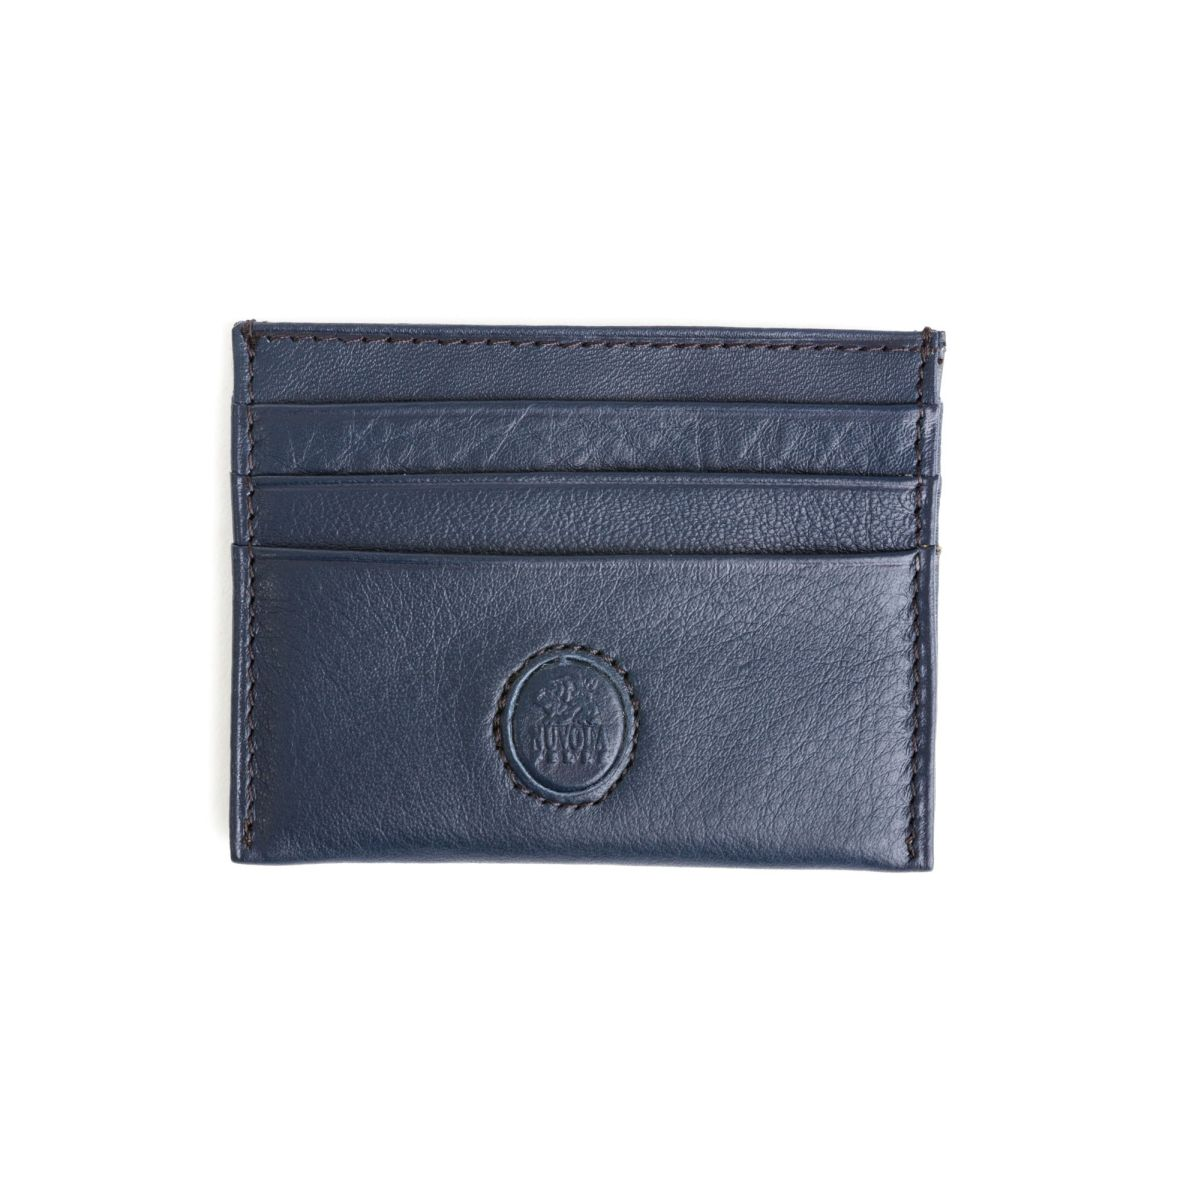 NUVOLA PELLE Minimalist leather credit card wallet - Blue